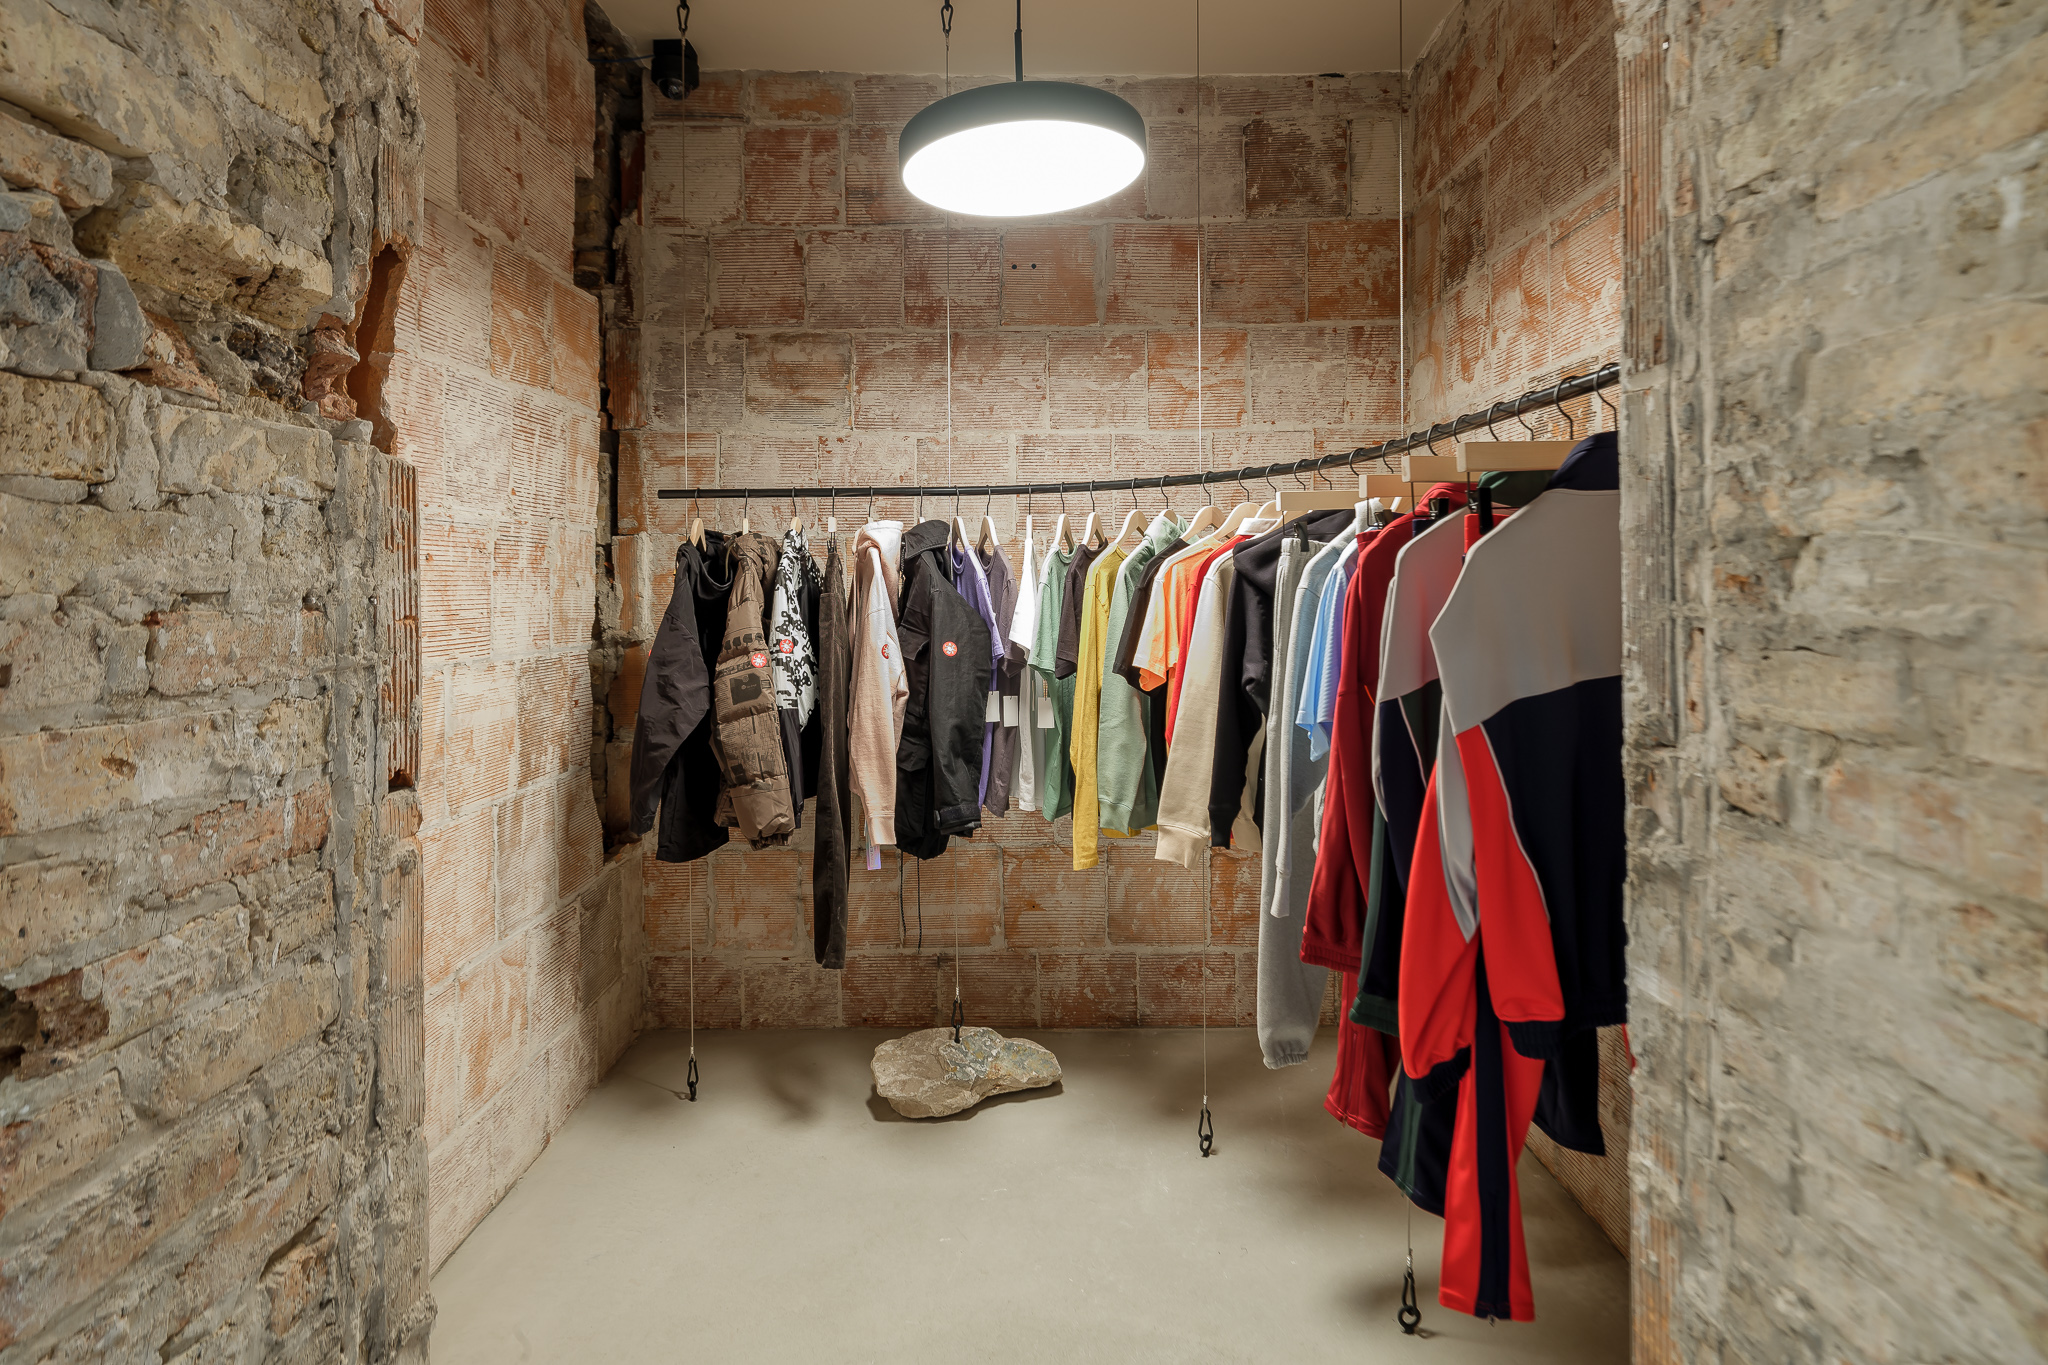 Photo of clothes hanging in room with unfinished stone and brick walls